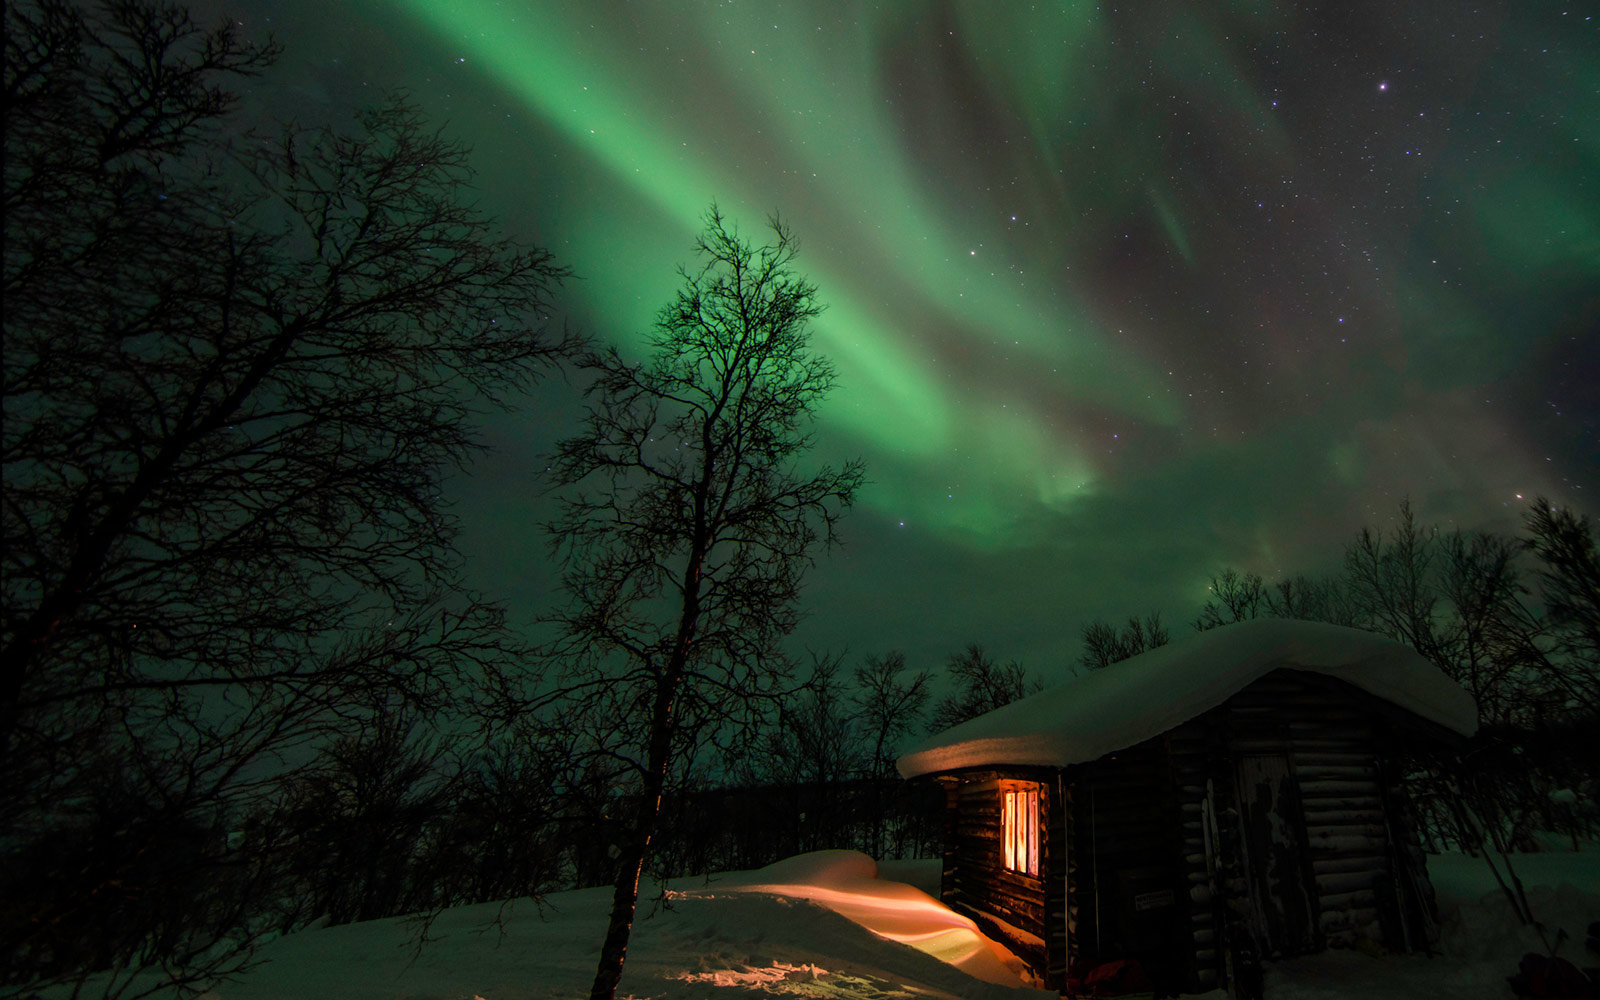 Northern Lights in Utsjoki, Finland